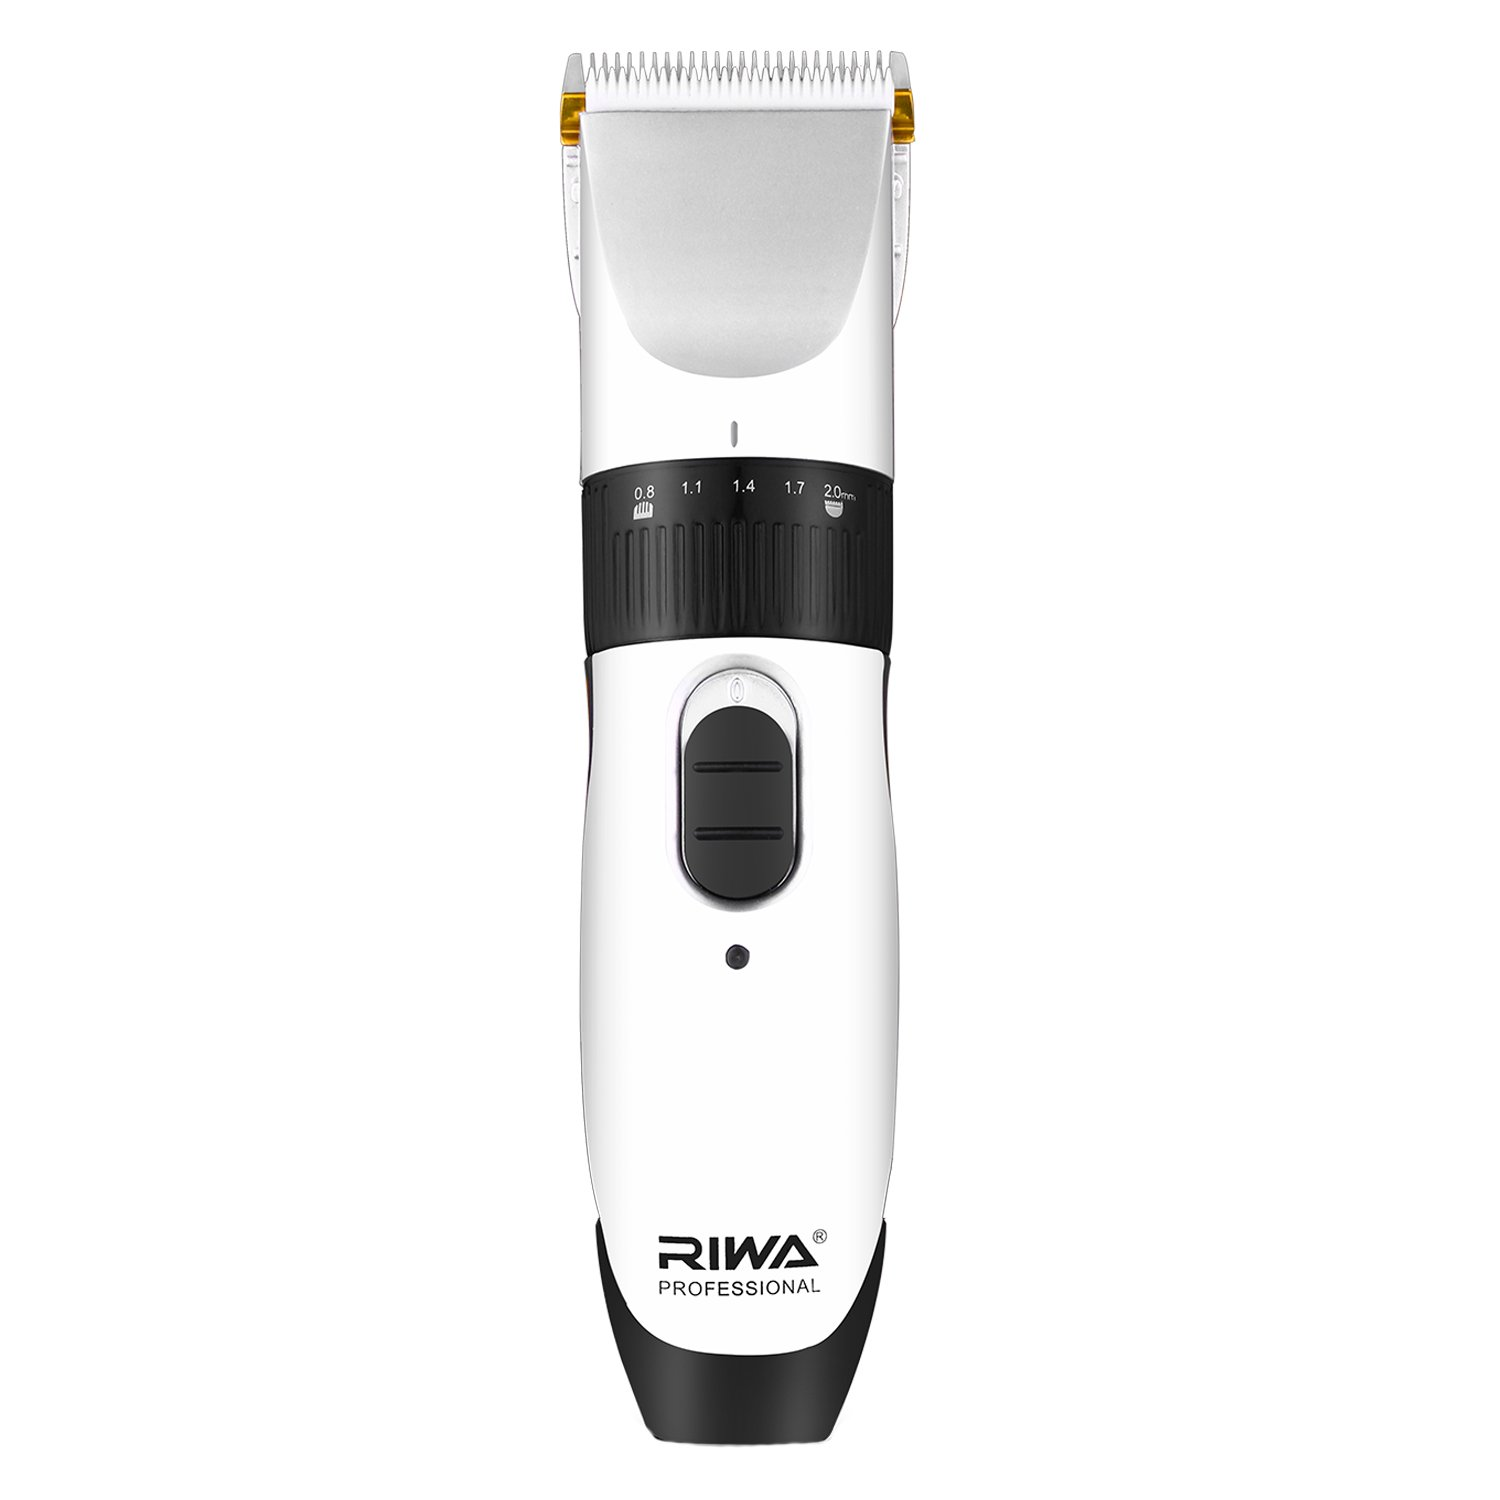 Riwa RE-539C Electric Hair Clipper, Cordless Corded Hair Cutting Kit Beard Trimmer with 2 Back-up Batteries